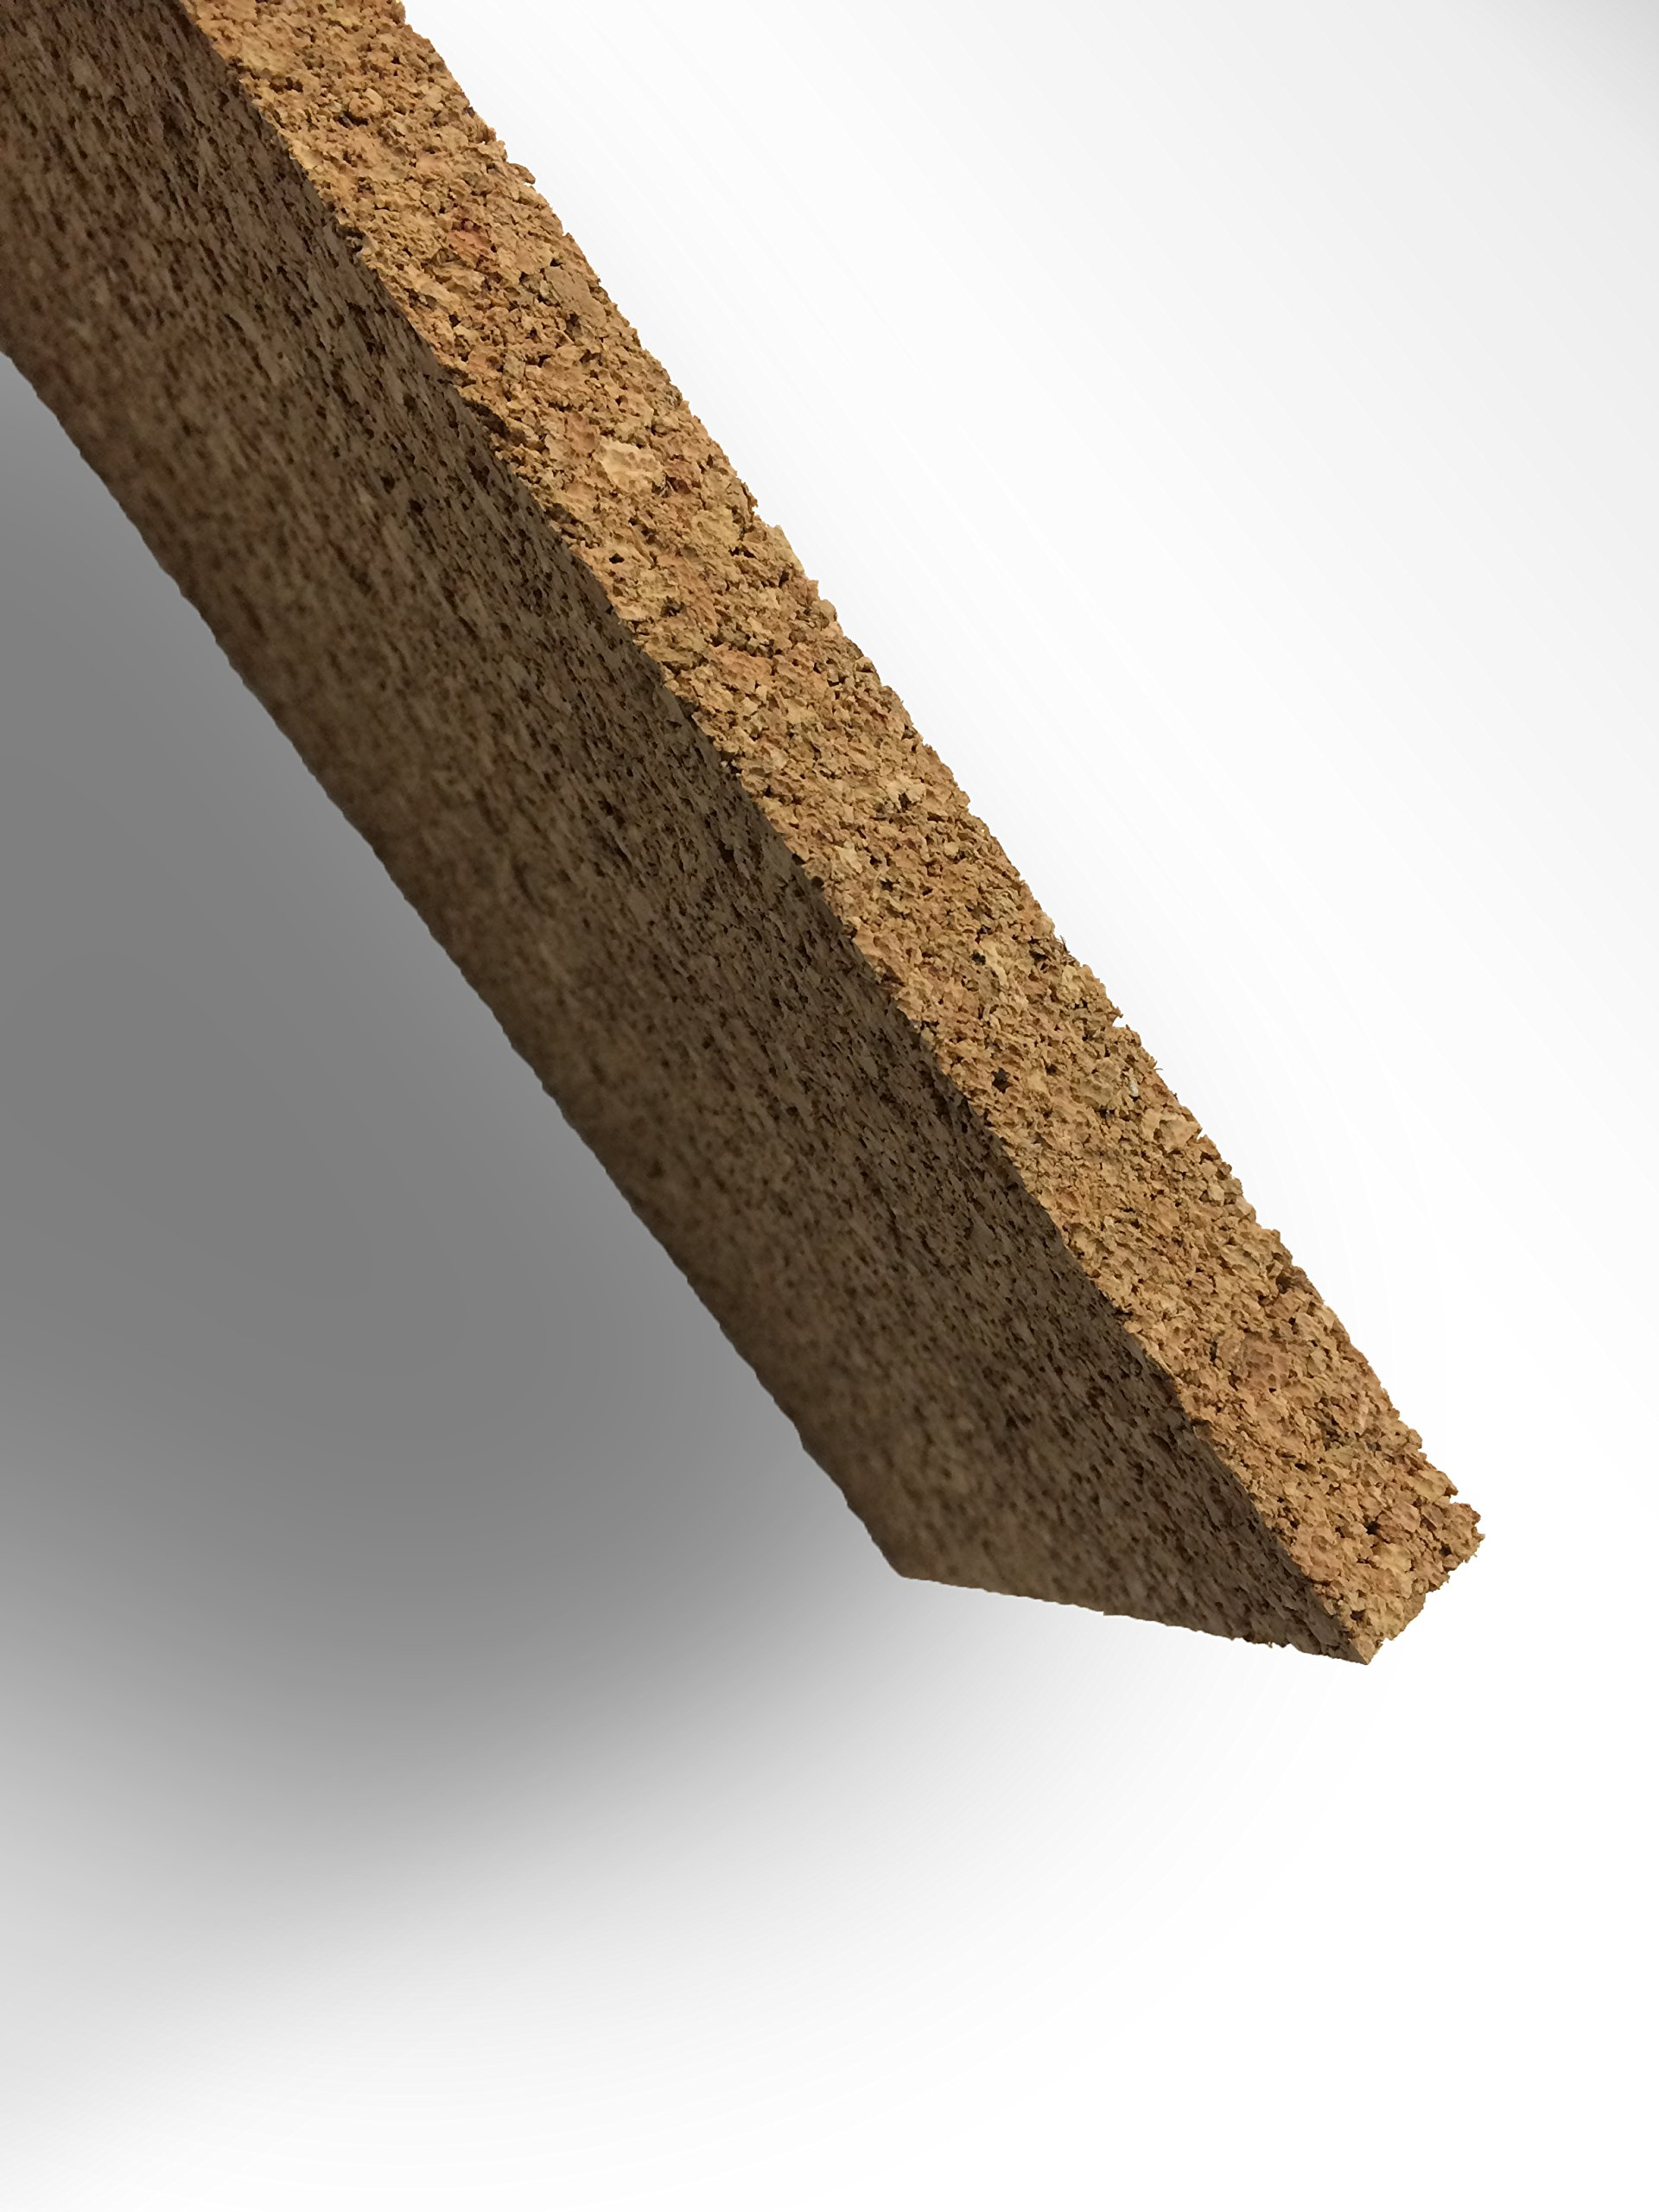 Thick Multi Purpose Cork Strips (8 Pack) Classroom Bulletin Board Bar 36x3.5x0.5 Inches by Jelinek Cork Group (Image #2)